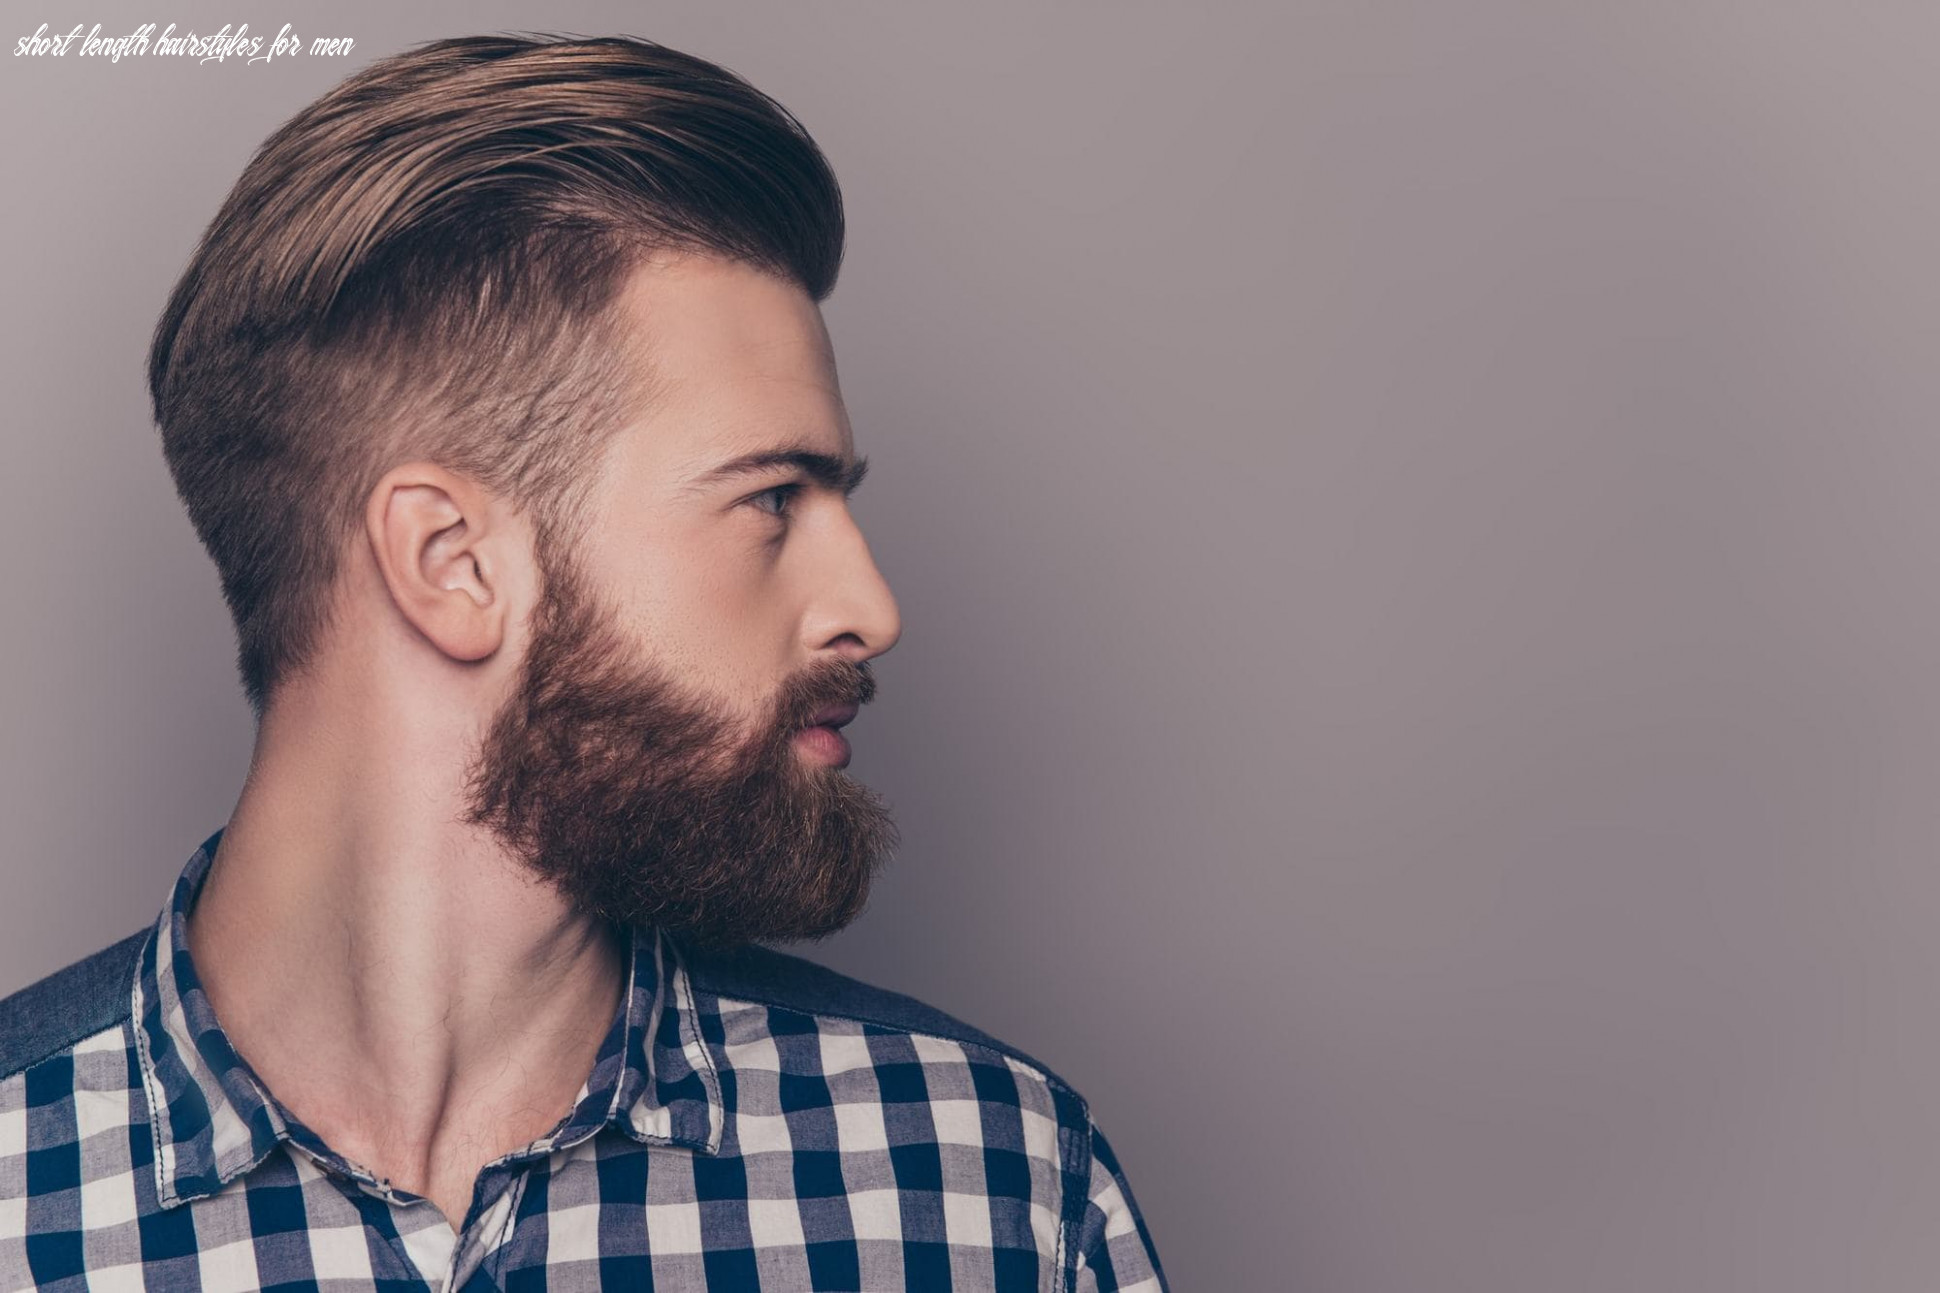 Short Hairstyles for Men with Thick Hair: 10 Styles We Love